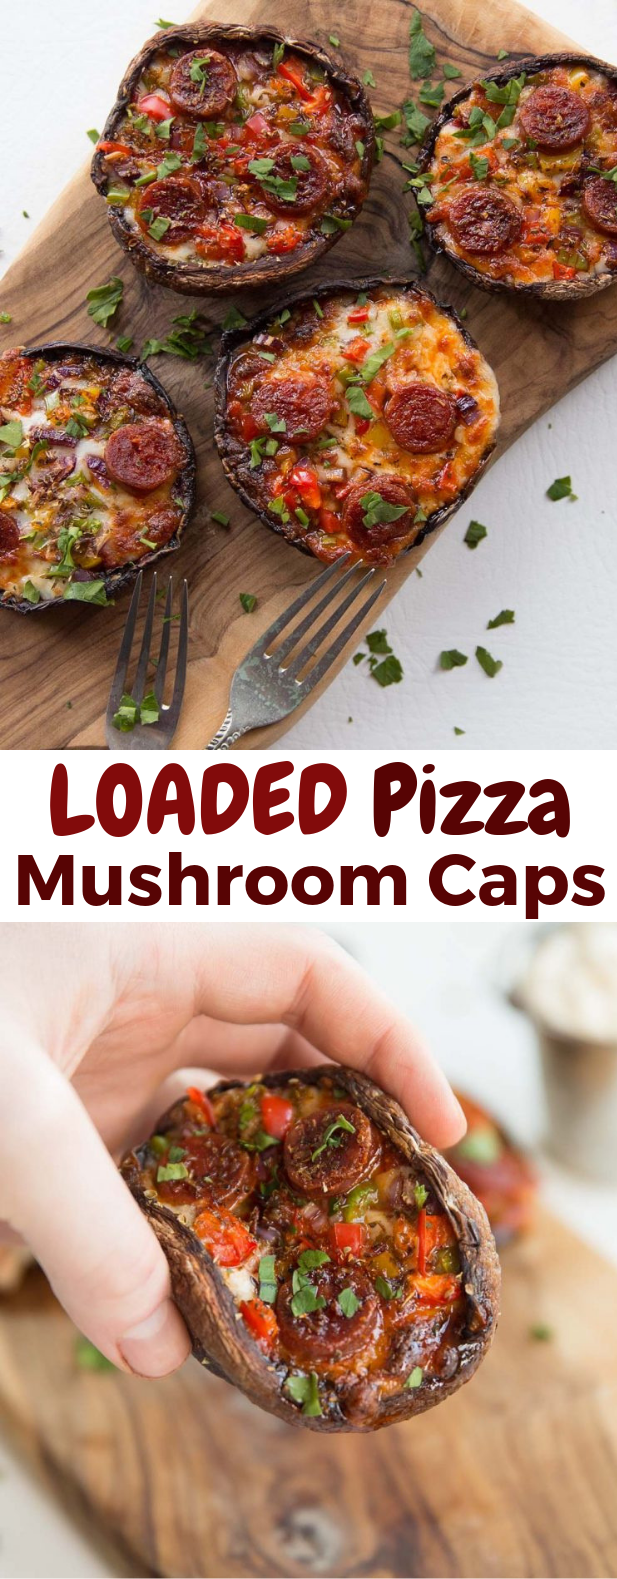 Pizza Stuffed Portobello Mushrooms #Pizza #LowCarb